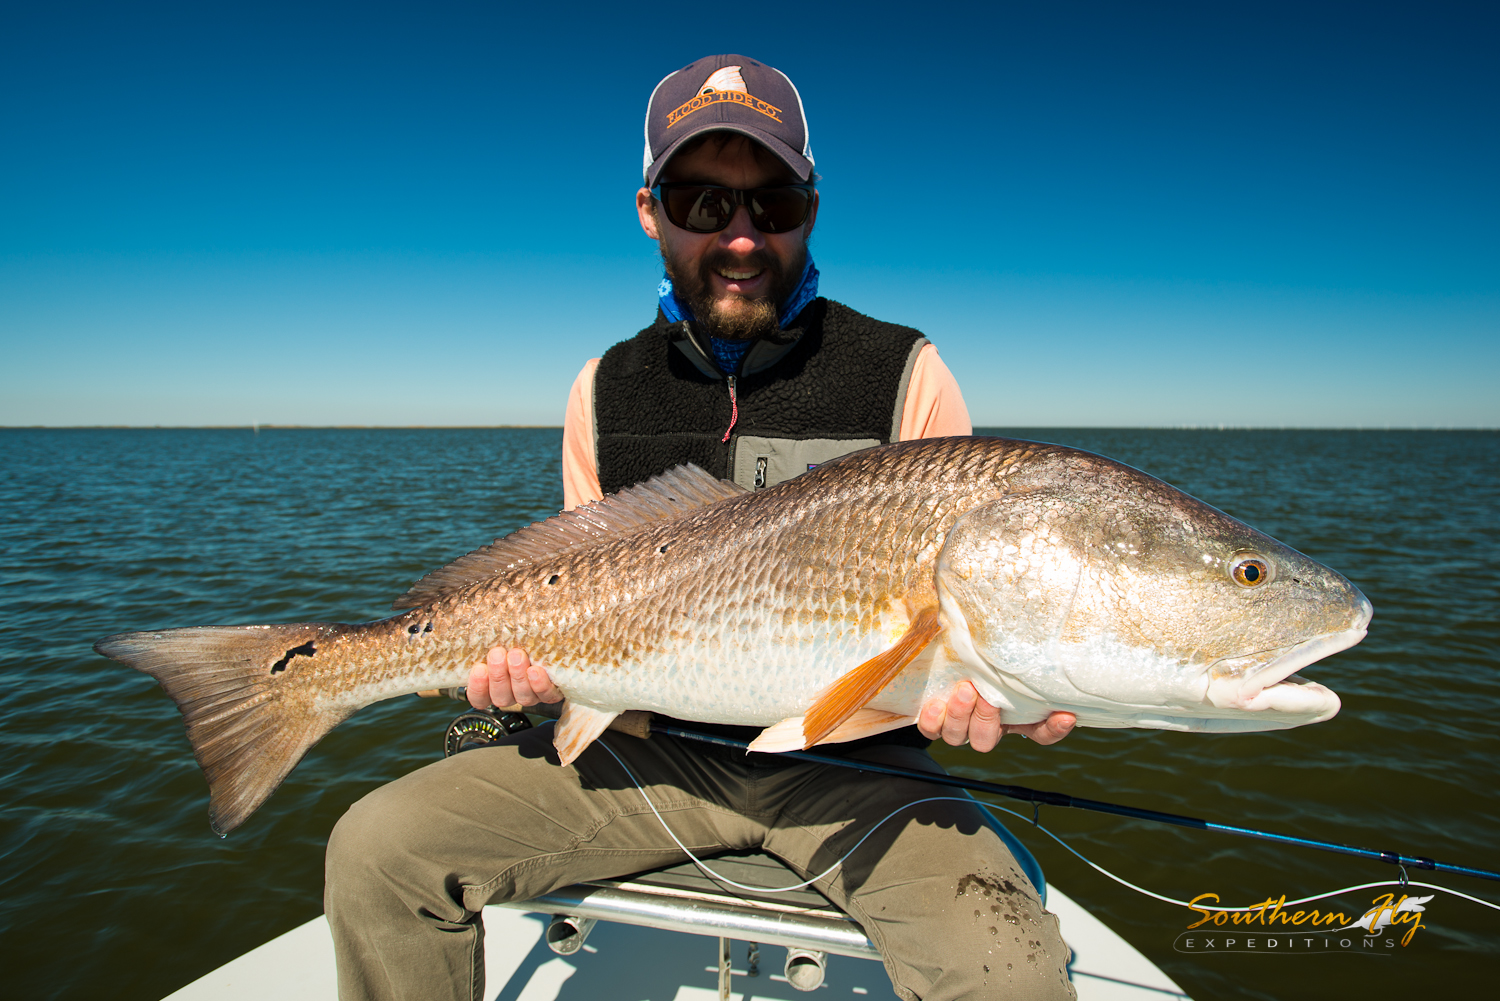 Southern Fly Expeditions  Captain Brandon Keck Fly Fishing Guide and Charter